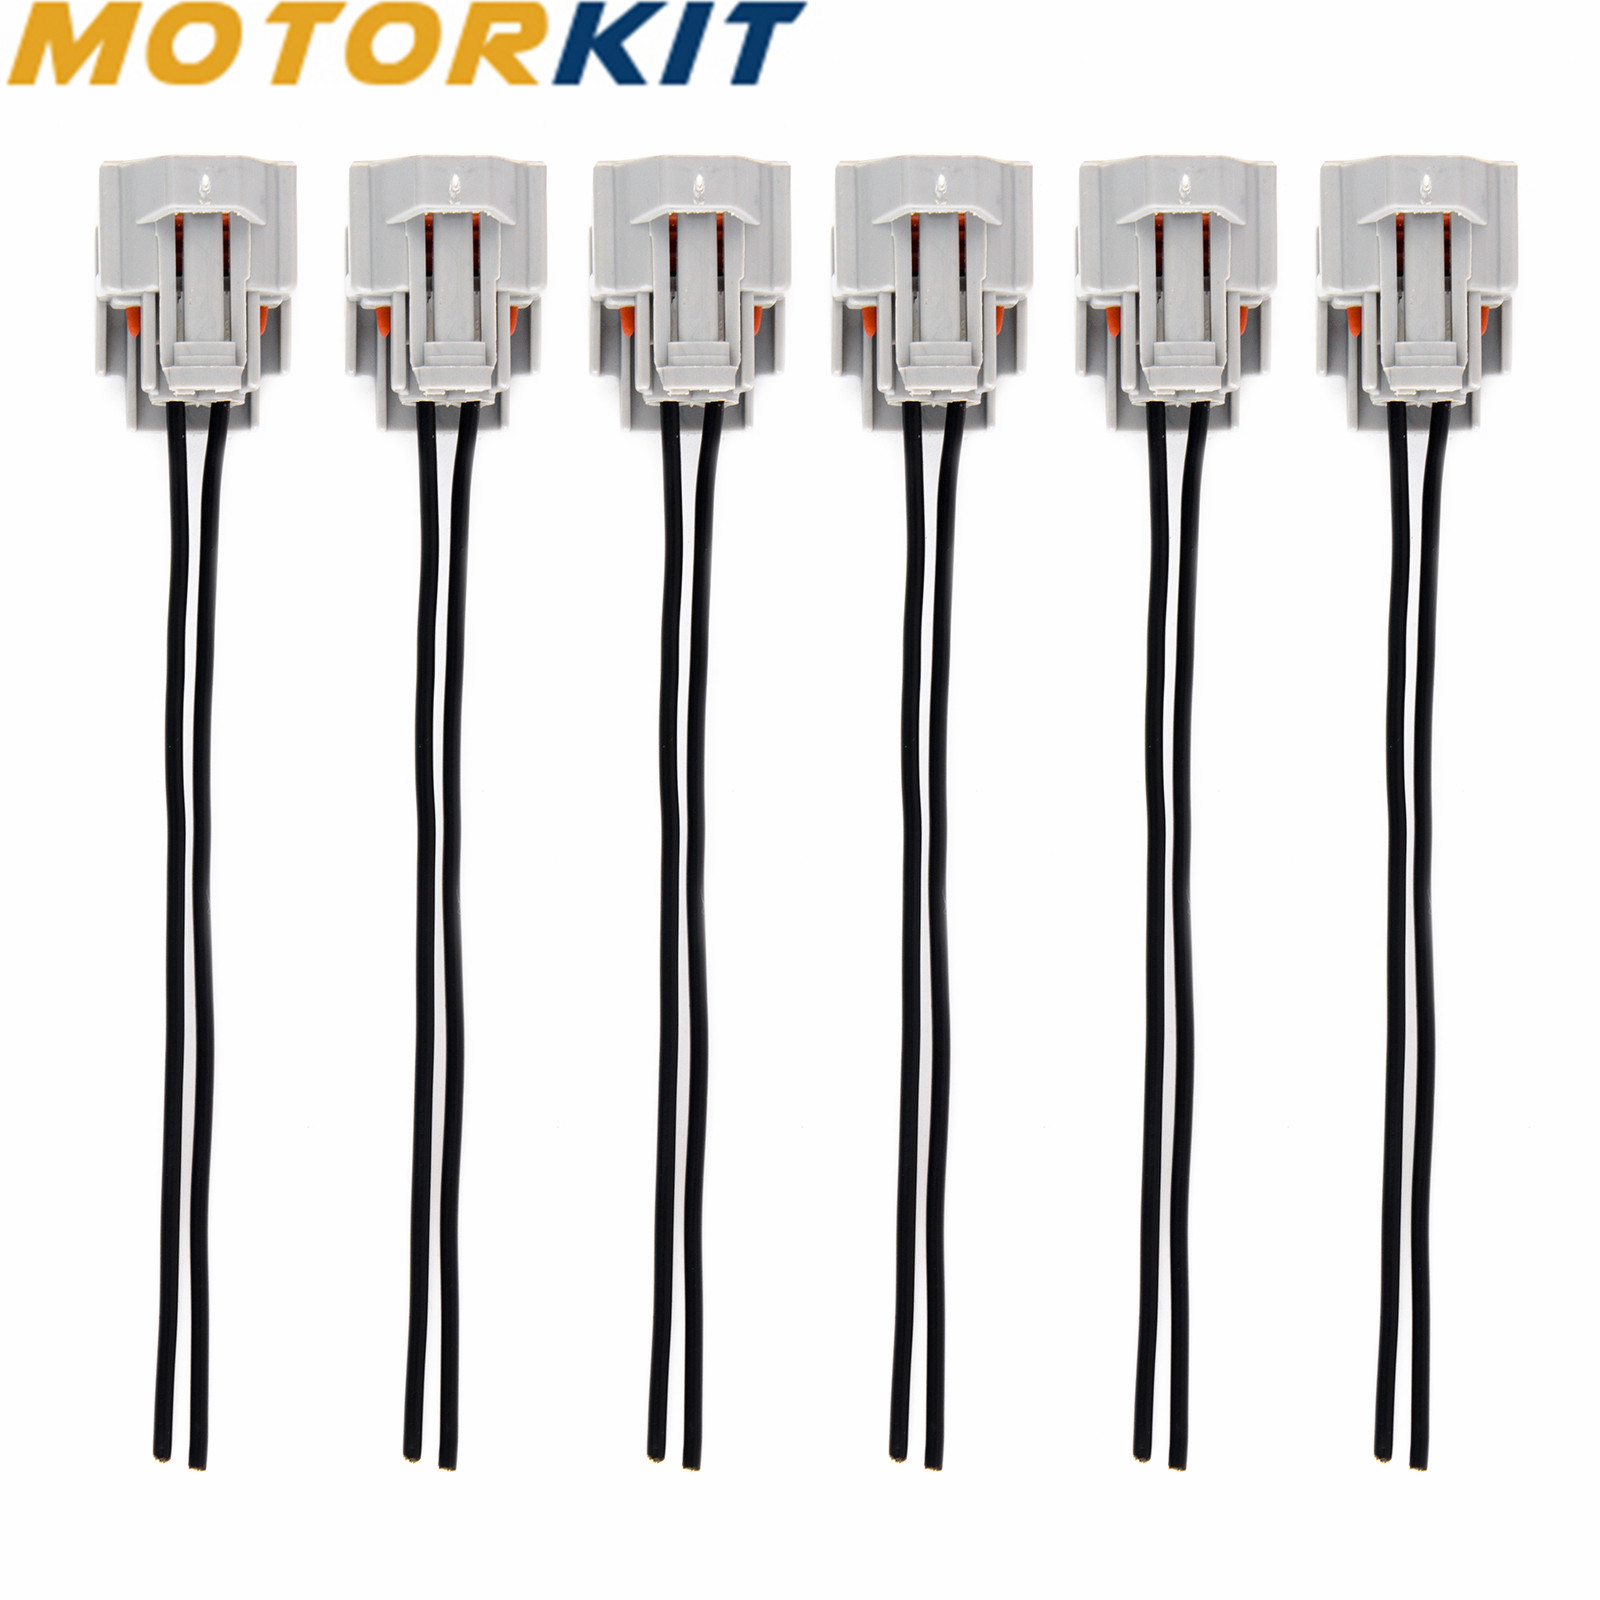 6x High Impedance Female Fuel Injector Connector Electrical Plug Pigtail